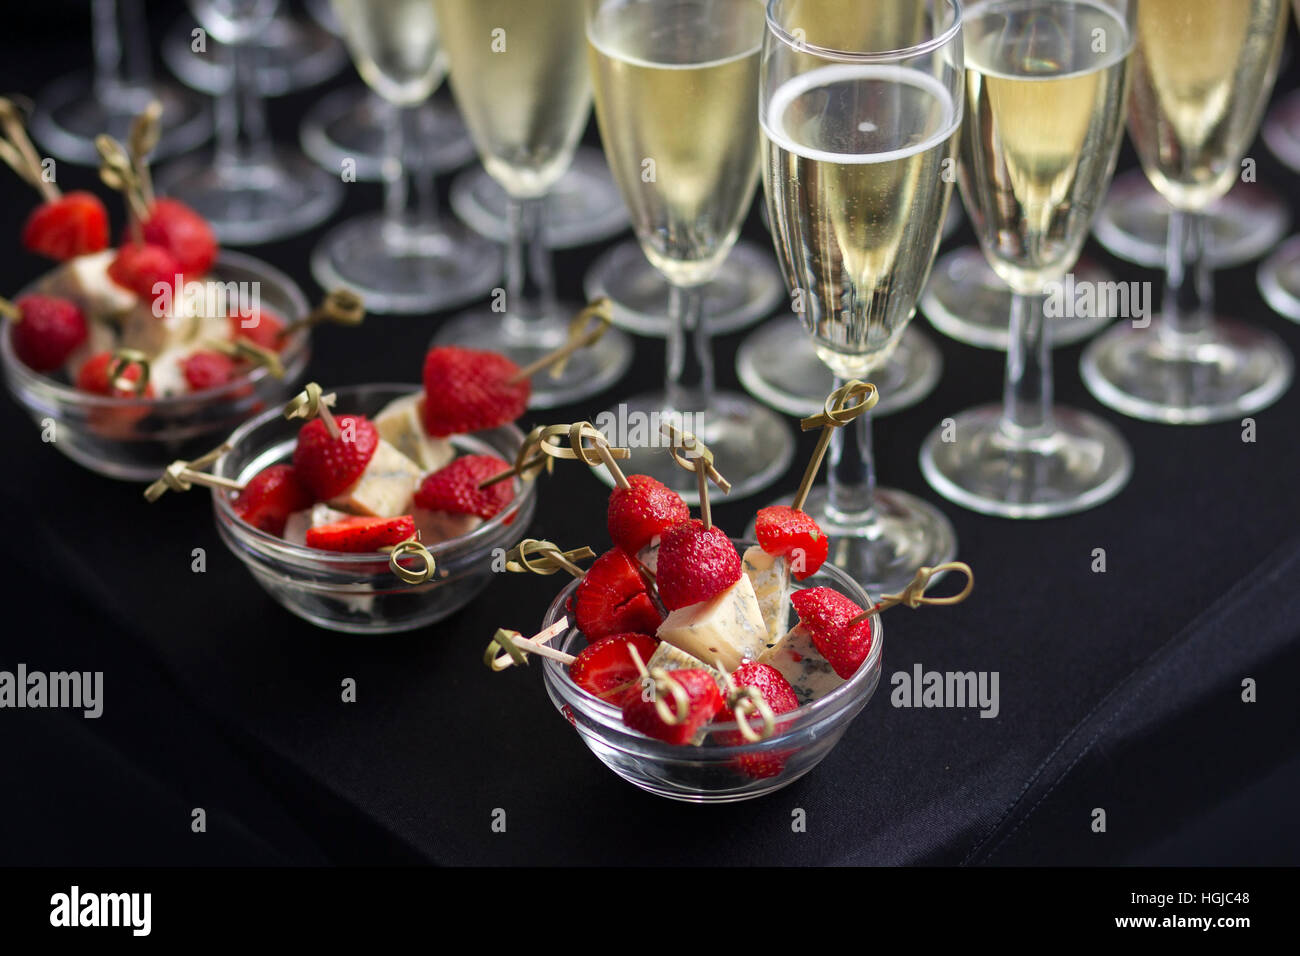 Canapes of cheese and strawberries with champagne - Stock Image